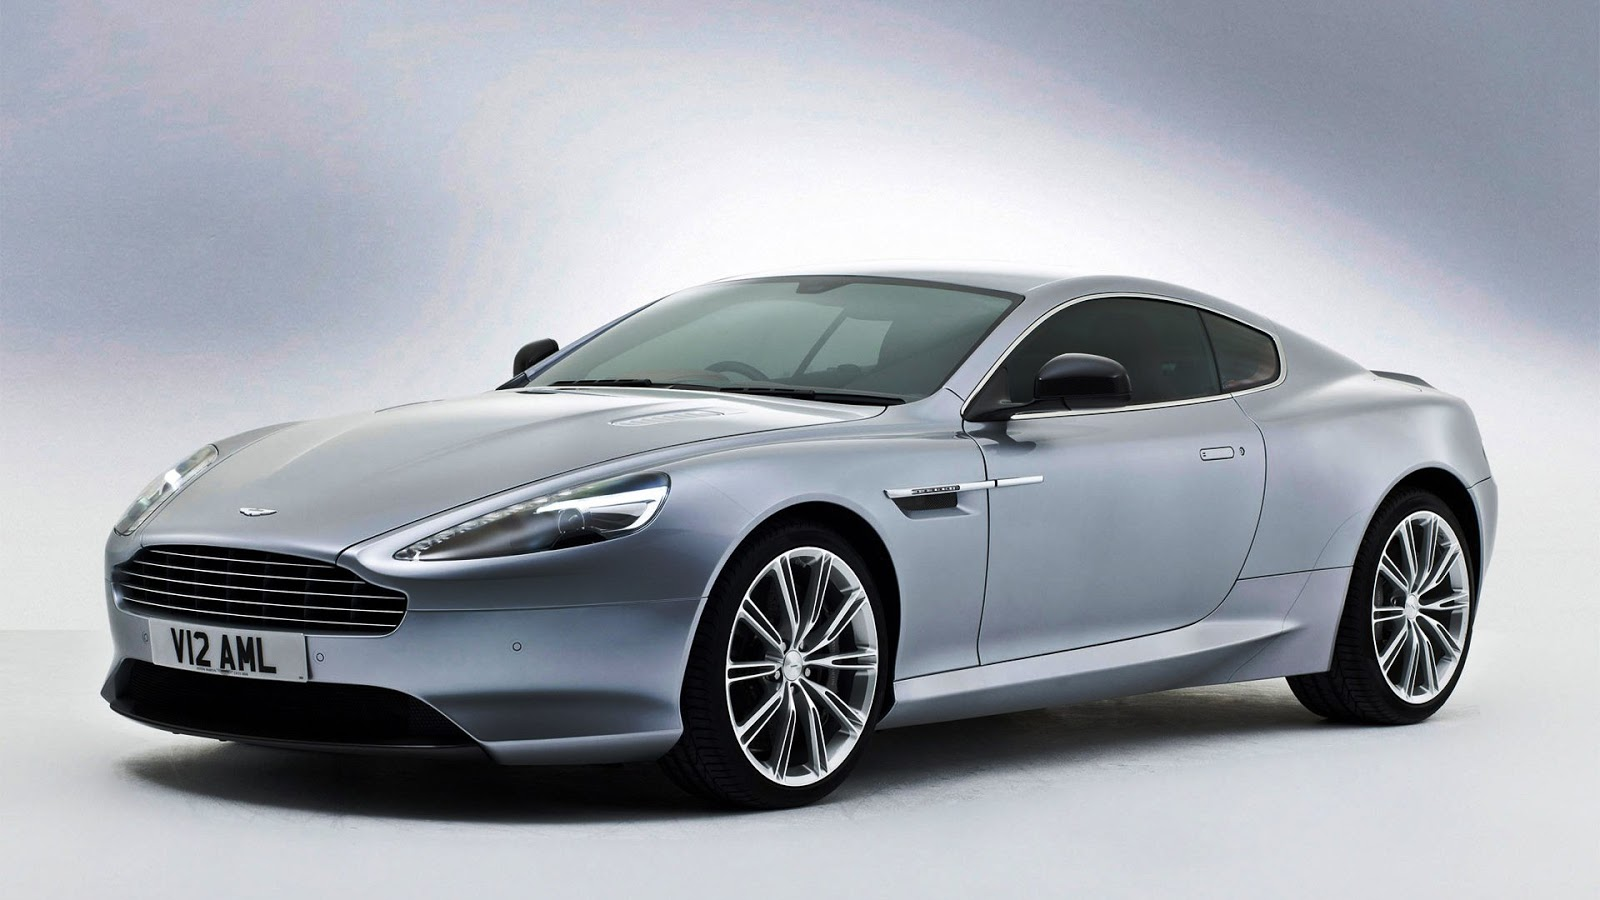 full hd exotic car wallpapers 2013 aston martin db9 coupe 2013 aston martin db9 volante. Black Bedroom Furniture Sets. Home Design Ideas